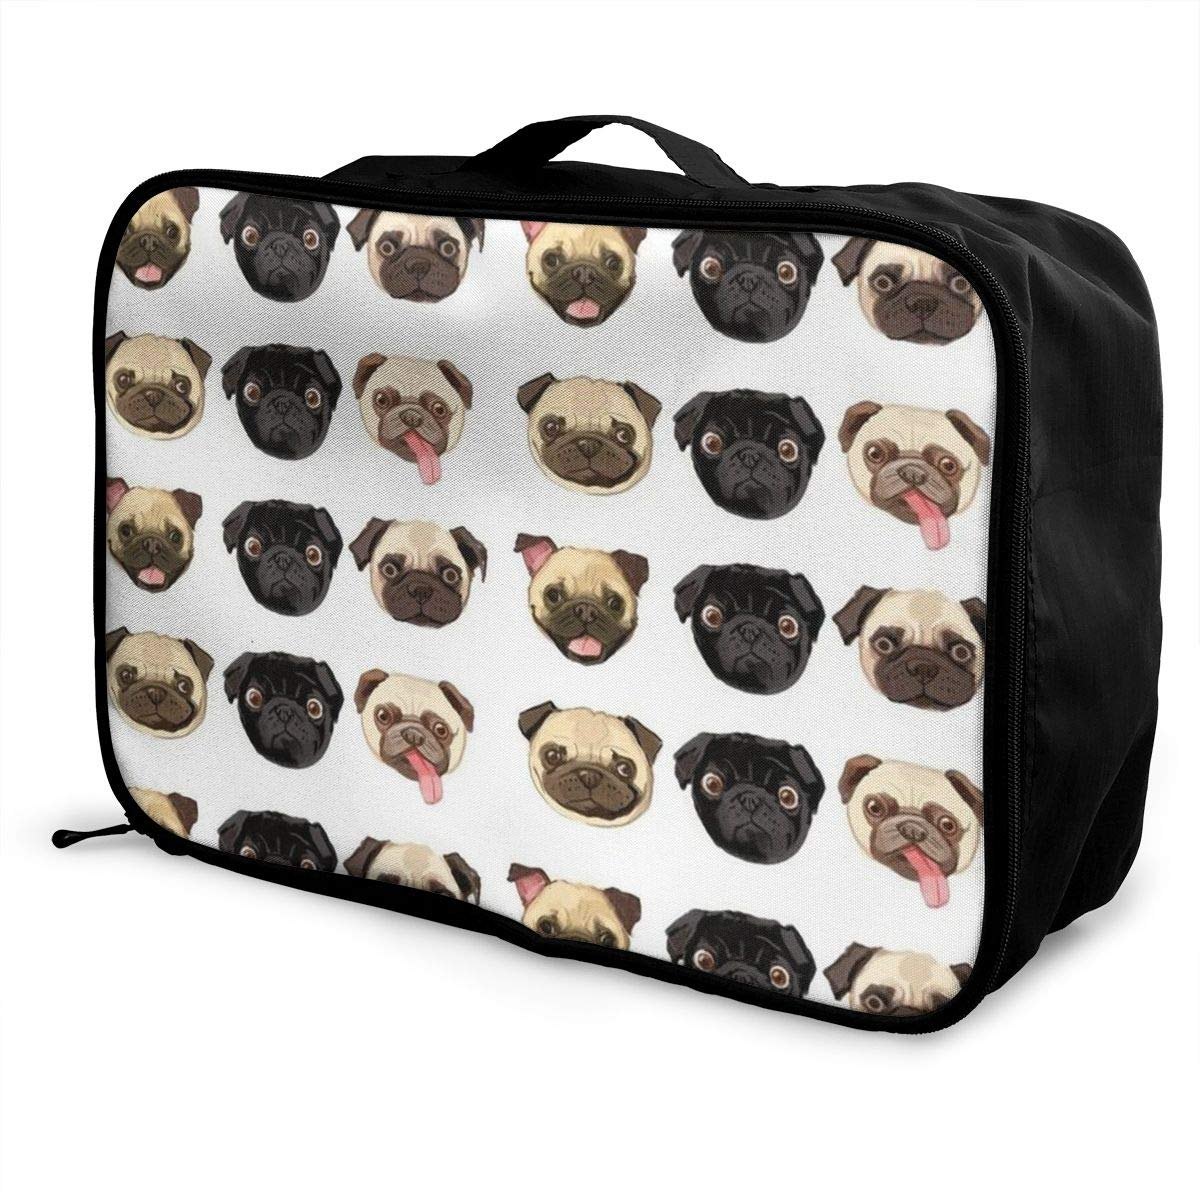 Travel Fashion Lightweight Large Capacity Duffel Portable Waterproof Foldable Storage Carry Luggage Tote Bag Cute Funny Pug Dog